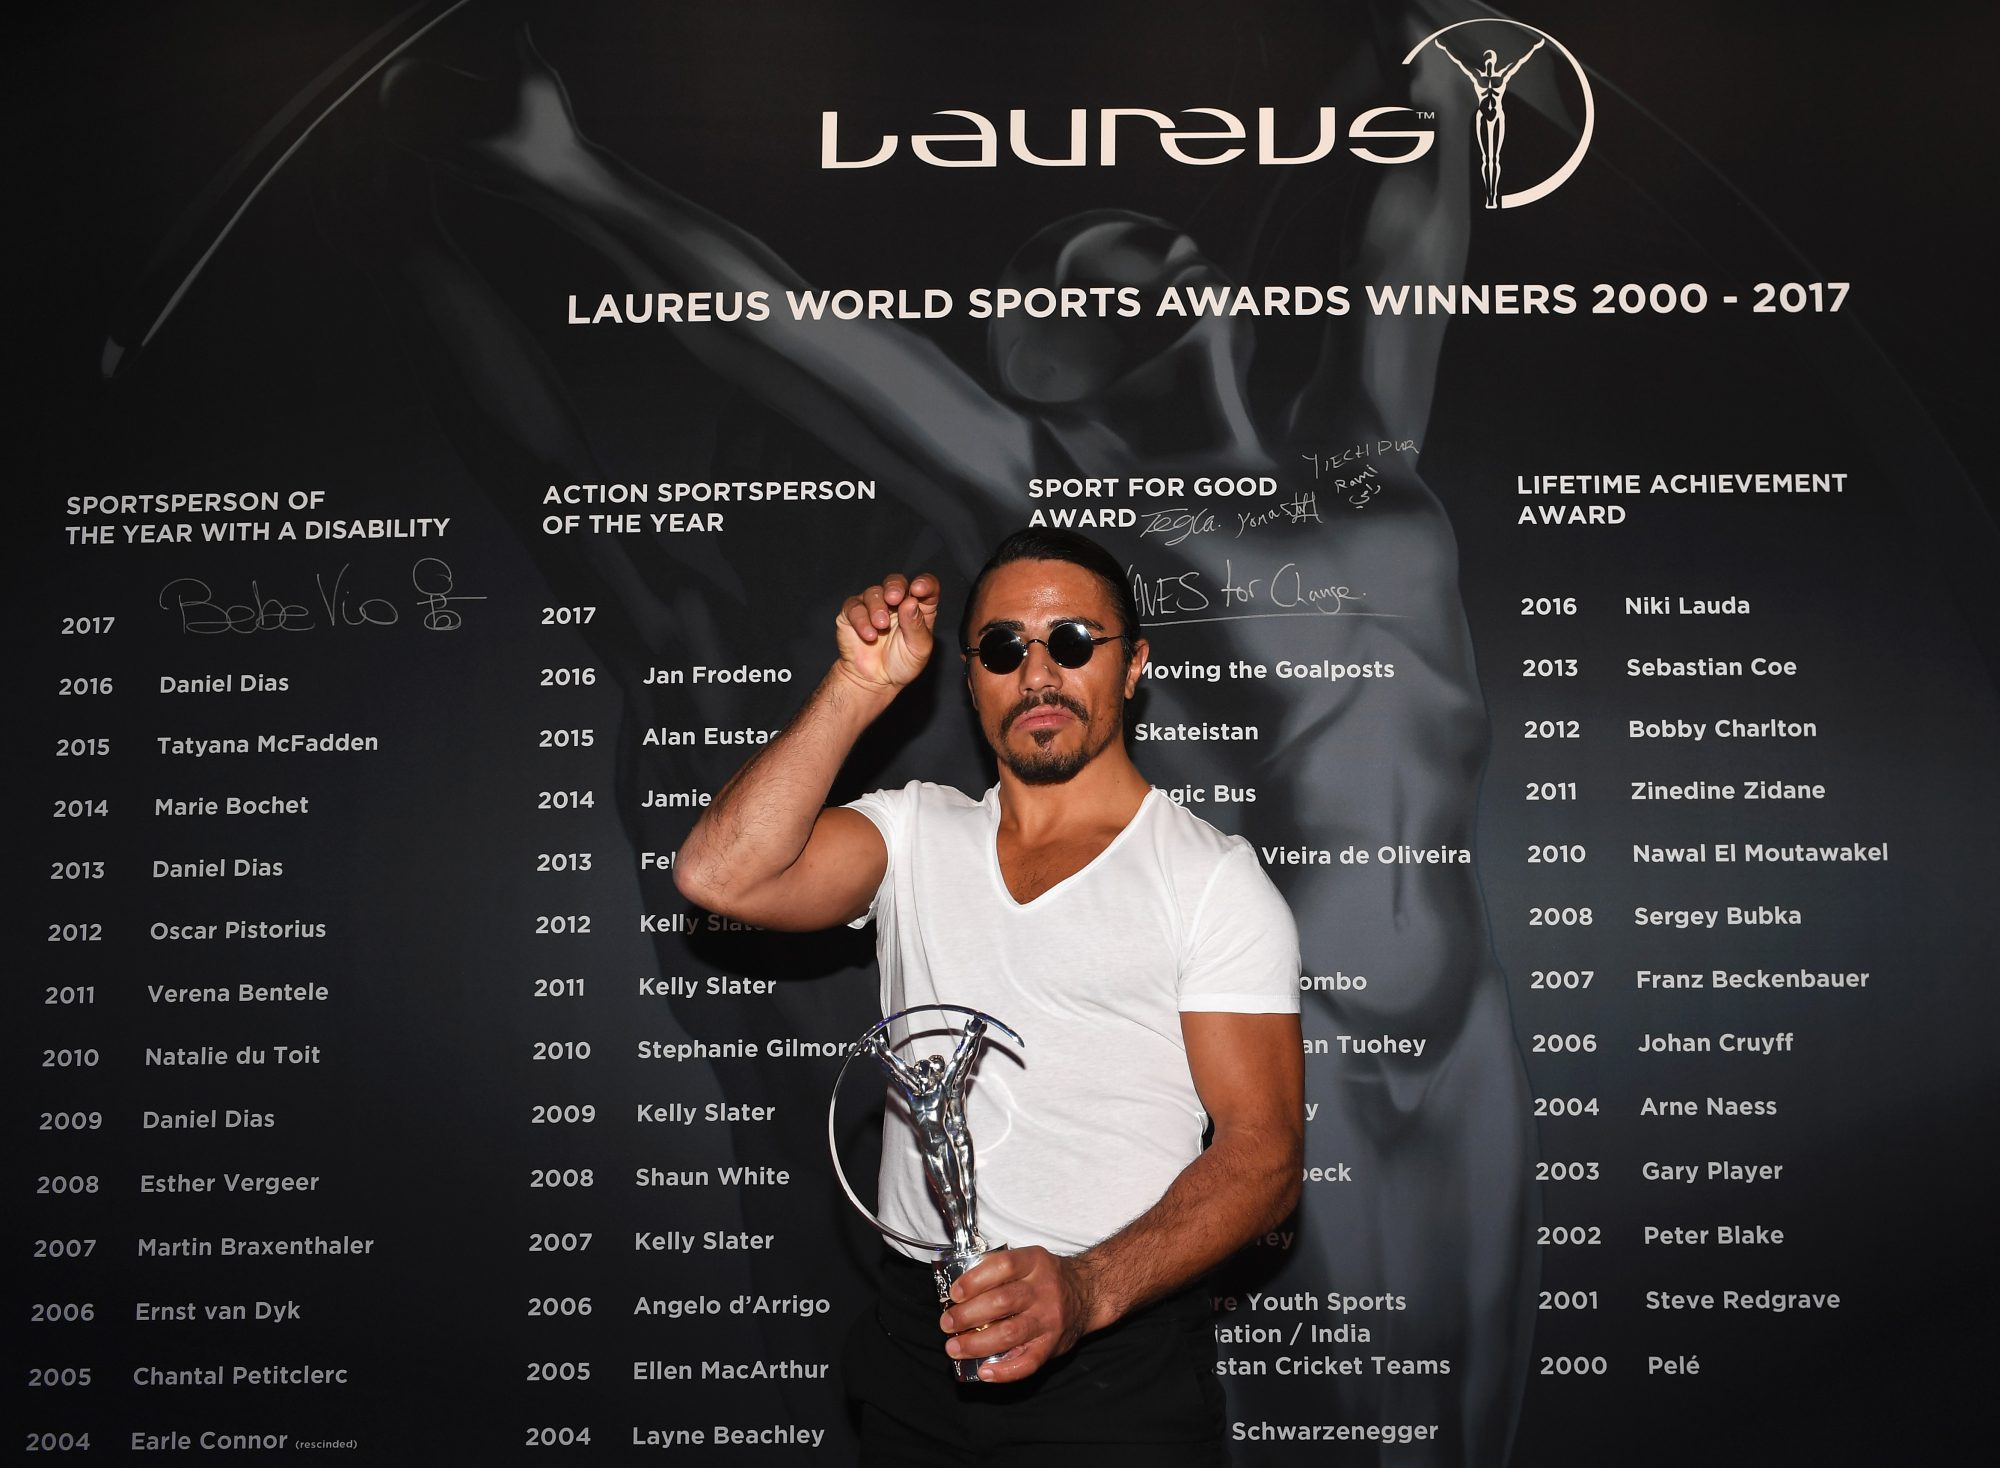 Show - 2017 Laureus World Sports Awards - Monaco